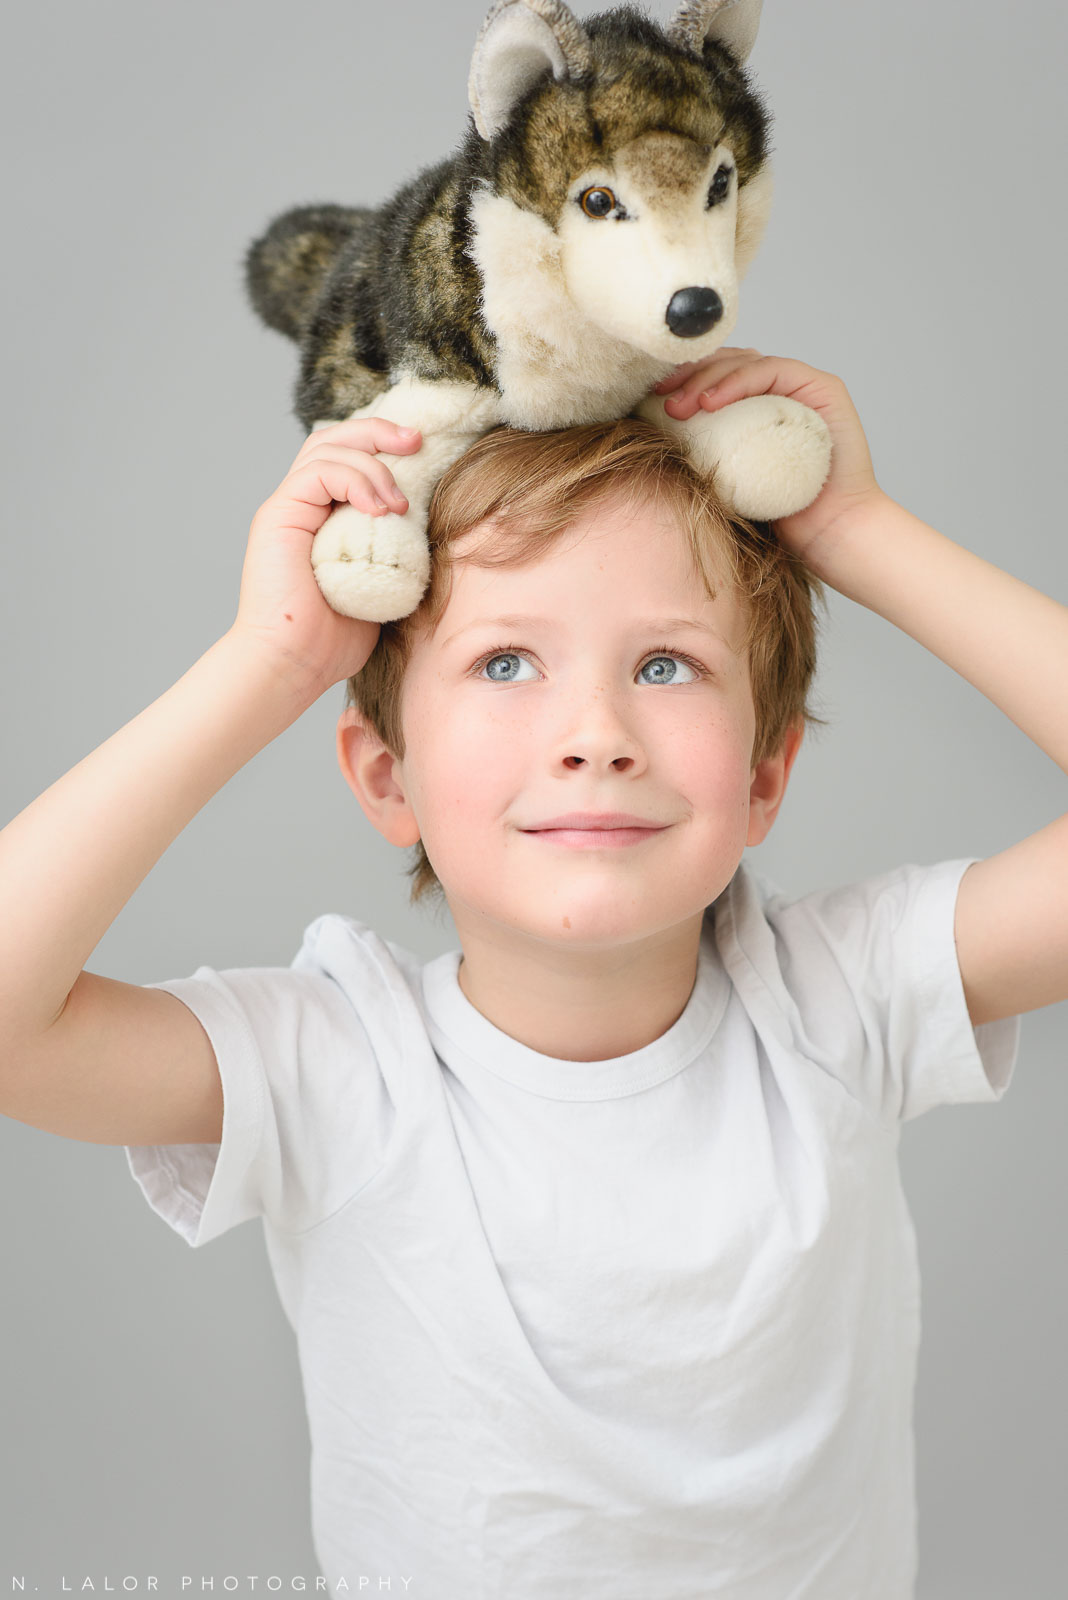 A boy and his favorite toy. Simple studio portrait session with N. Lalor Photography in Greenwich, CT.